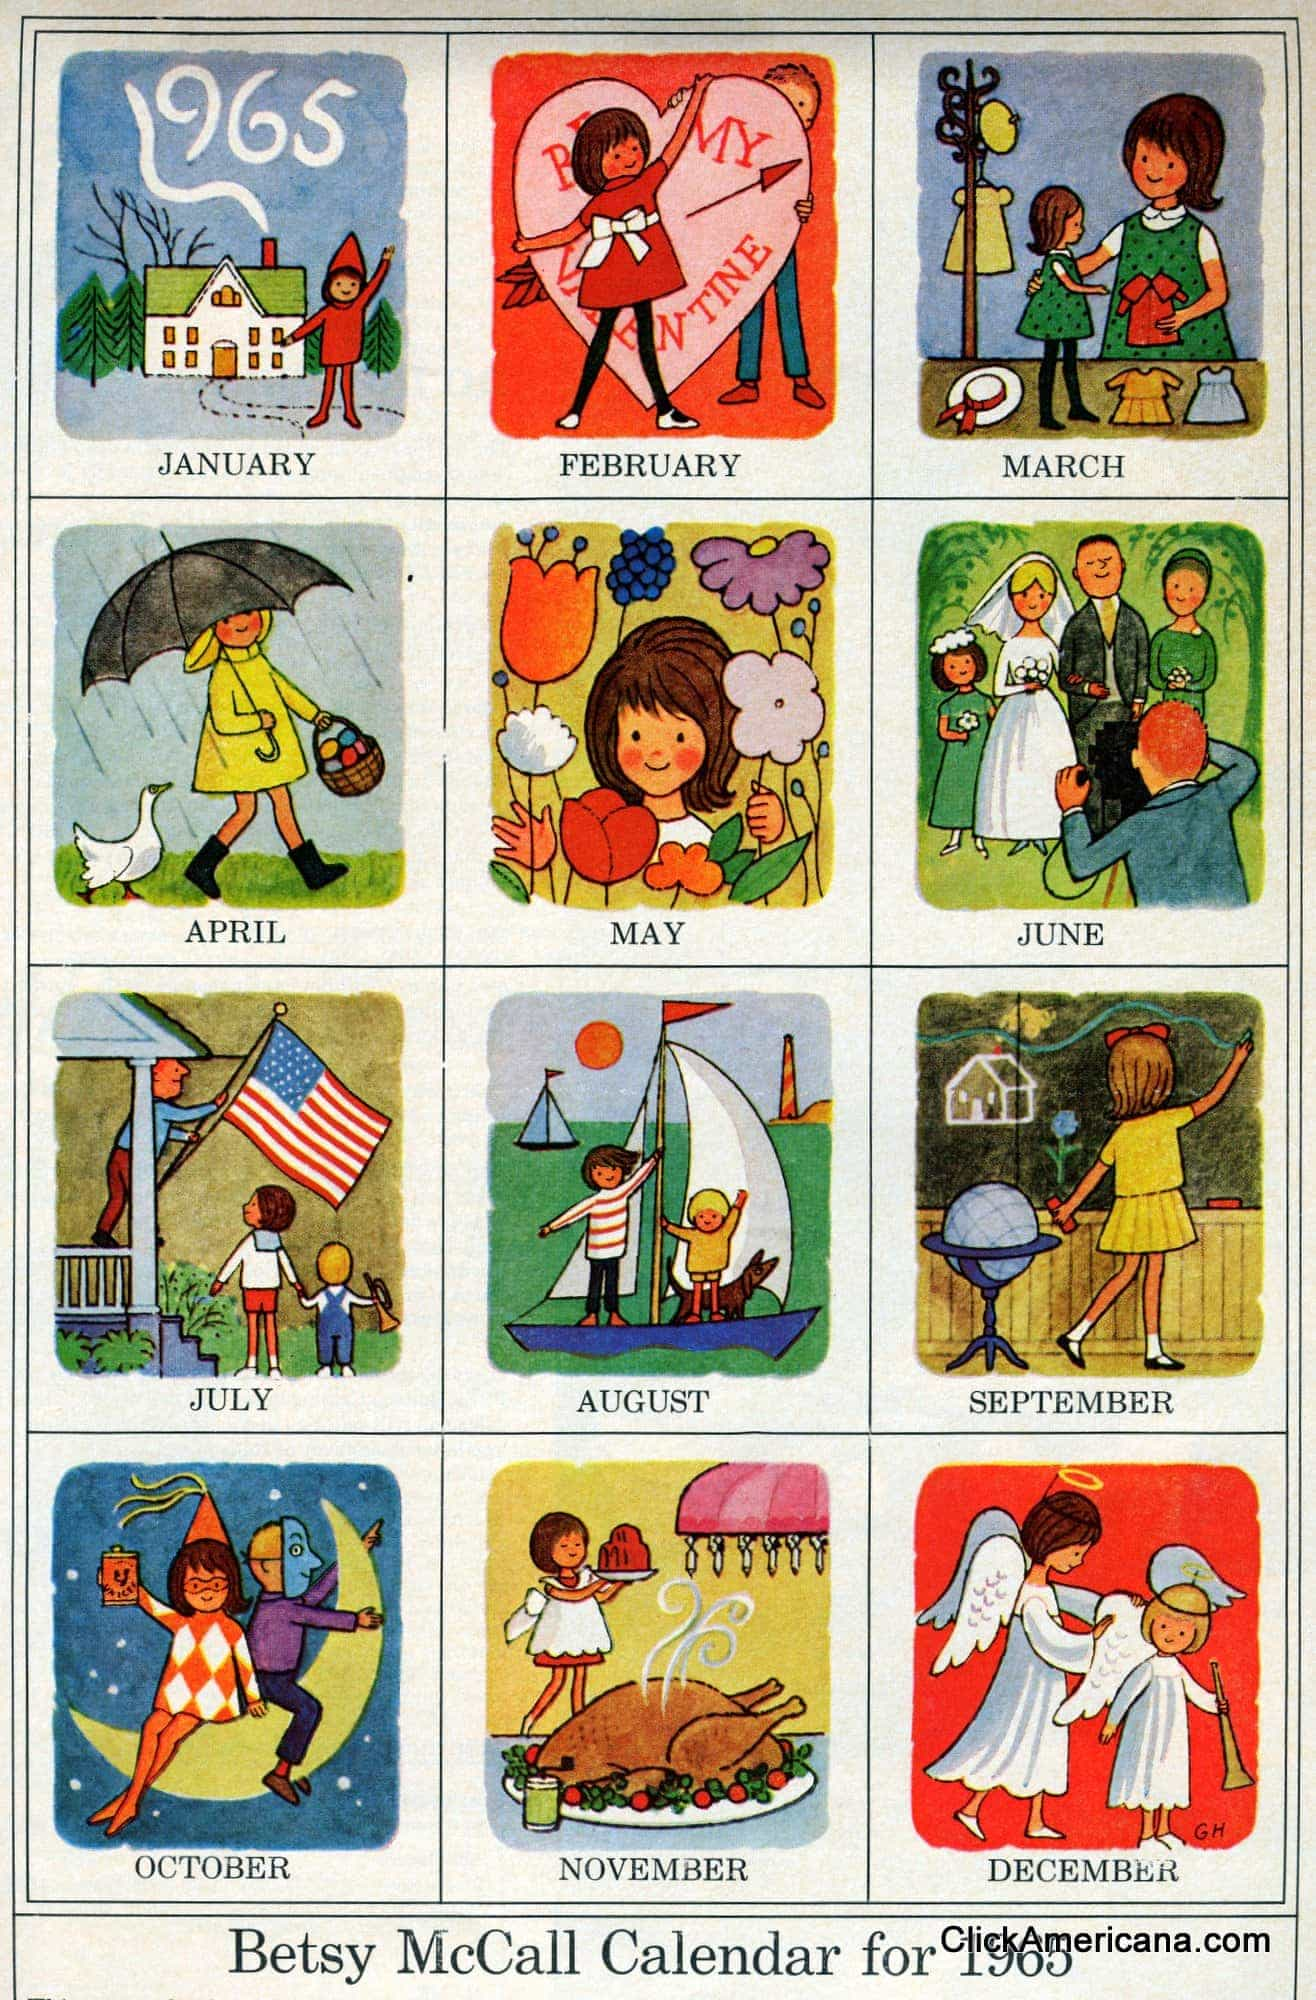 Month-by-month calendar icons (1965)